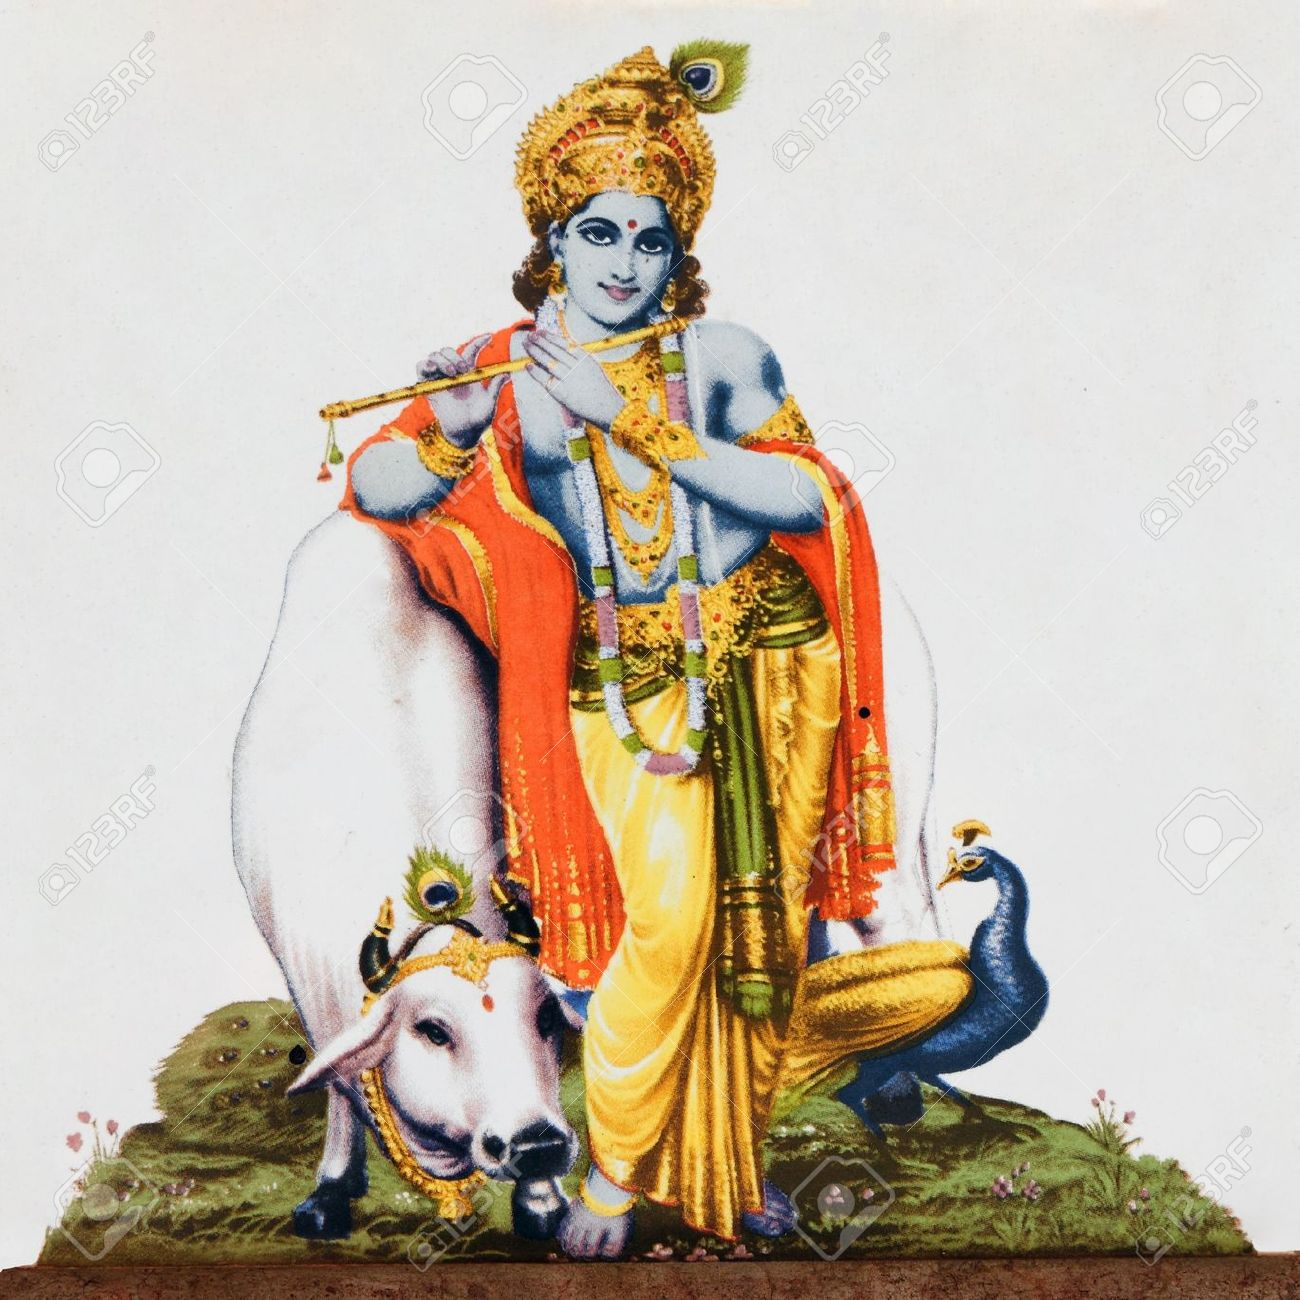 Krishna Art Stock Photos Images - Indian Cow With Krishna PNG